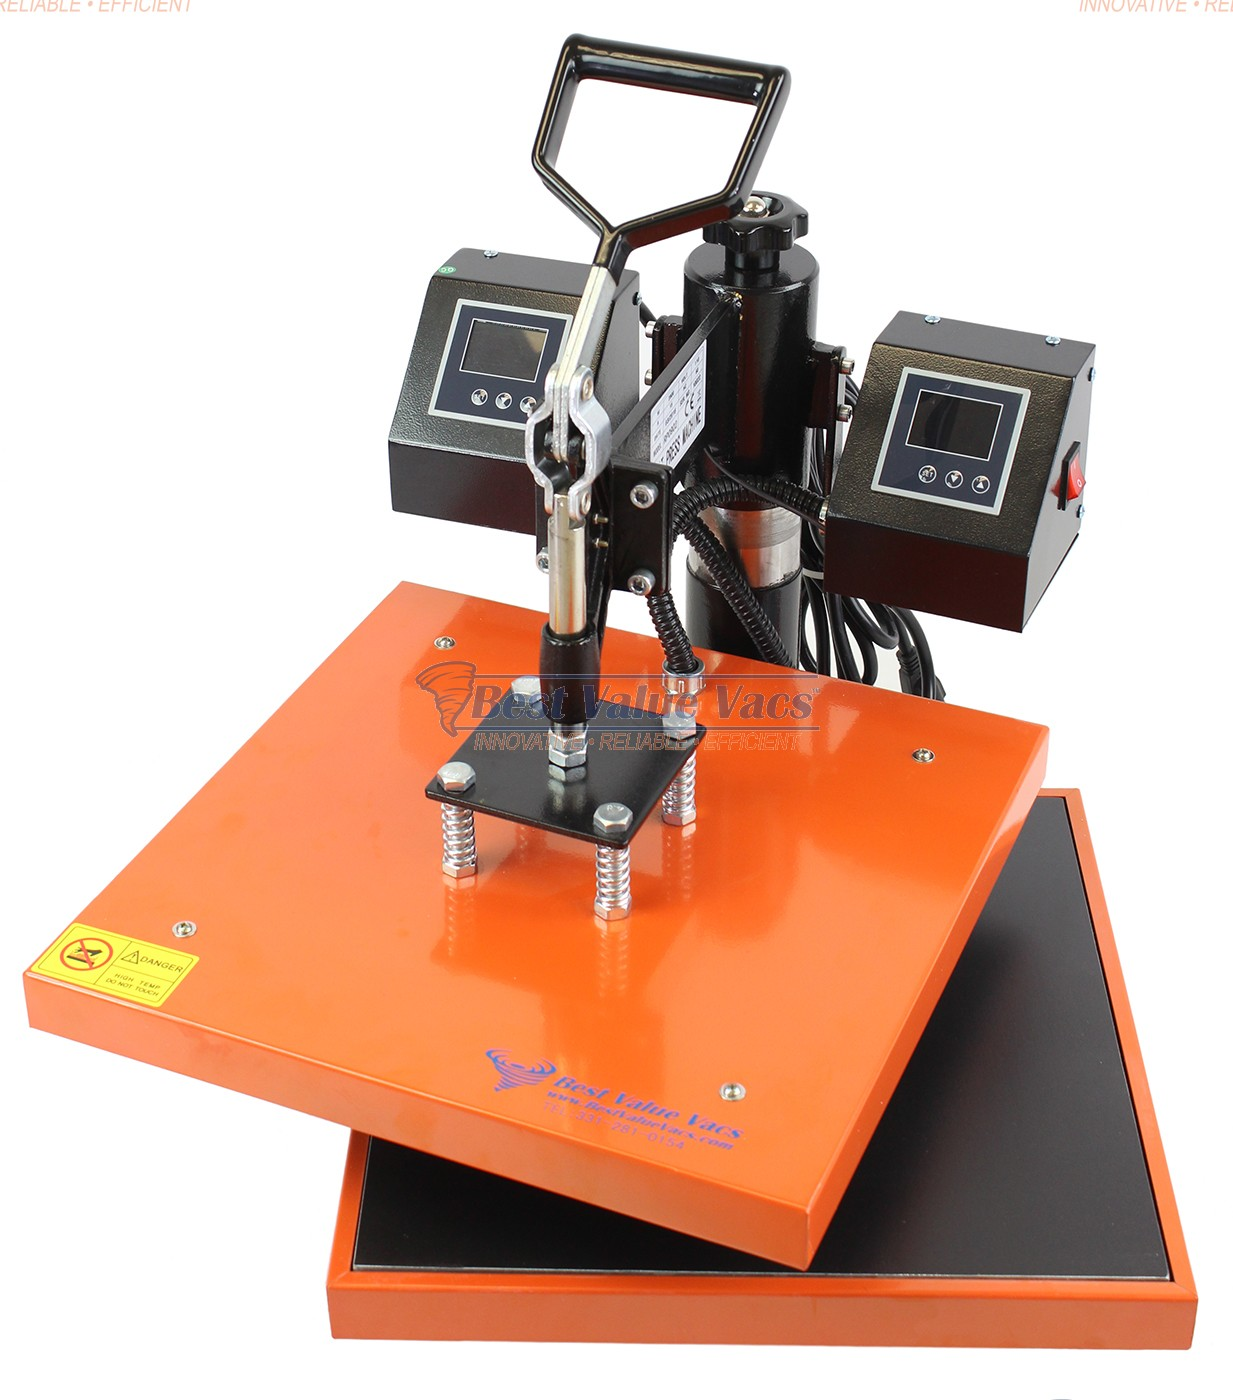 Easy Swing XL Rosin Press